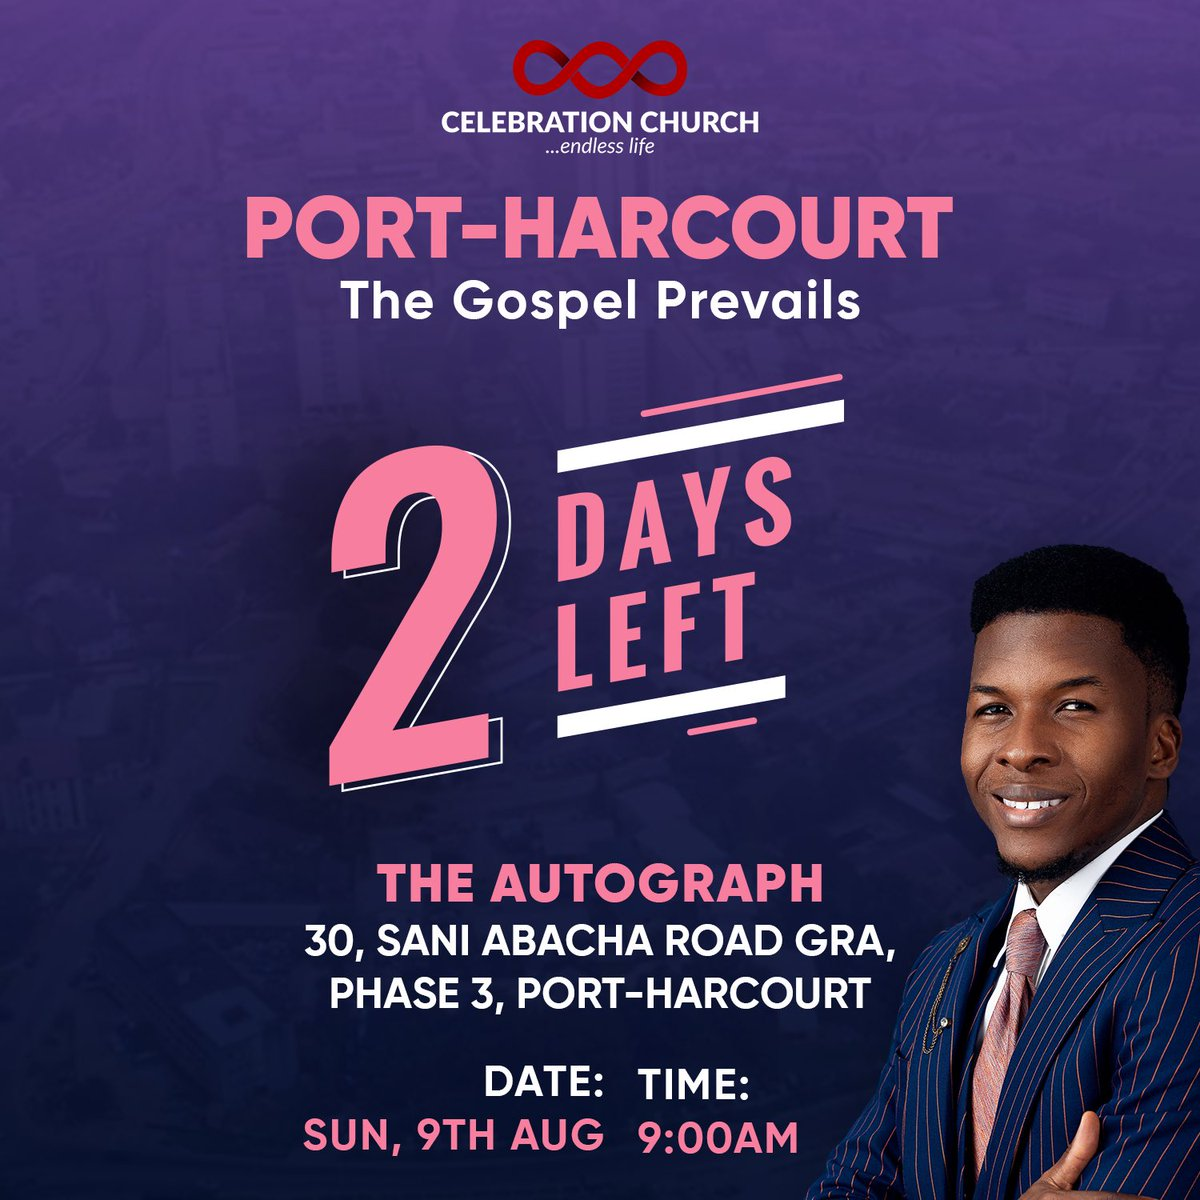 A bit of History. 11/11/2012 @cci_lagos was birthed with the vision to spread the undiluted gospel all over the world. 6/01/2018 @CCI_Abuja held it first service and continued to spread this gospel. Guess what! In 2 days time, Port Harcourt will welcome CCI with the gospel